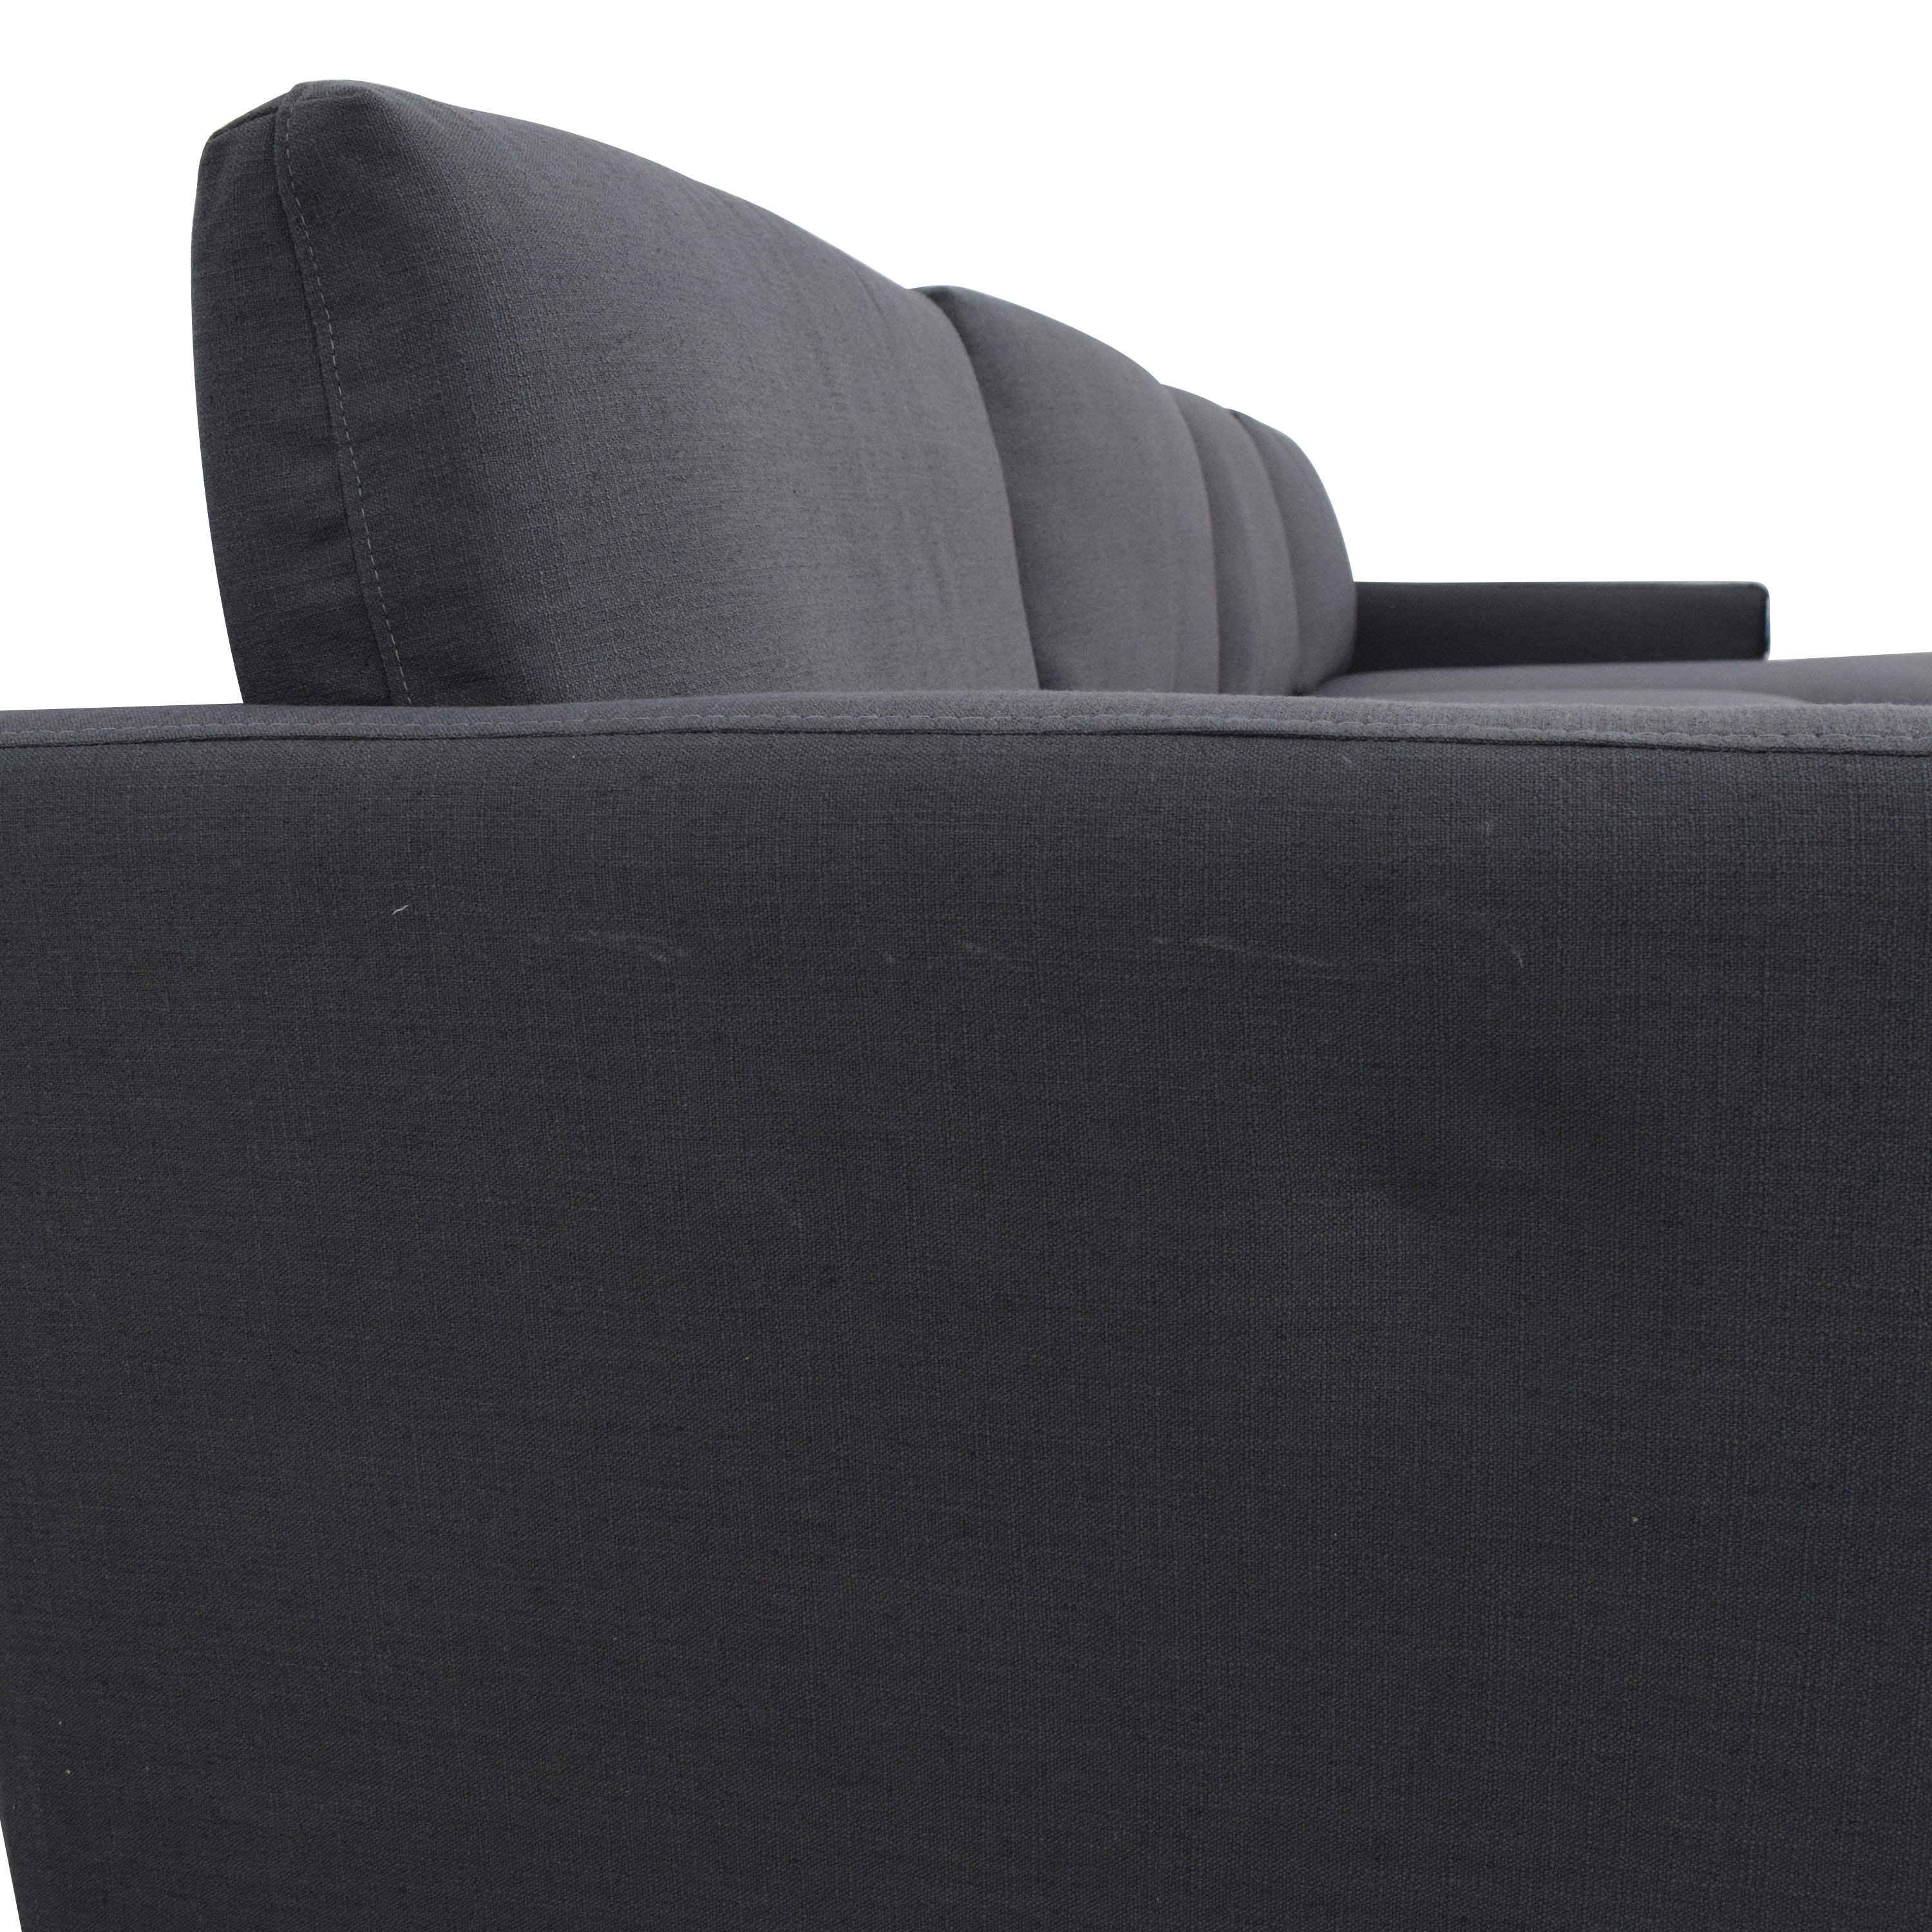 The Inside Modern Sectional-Right Facing The Inside